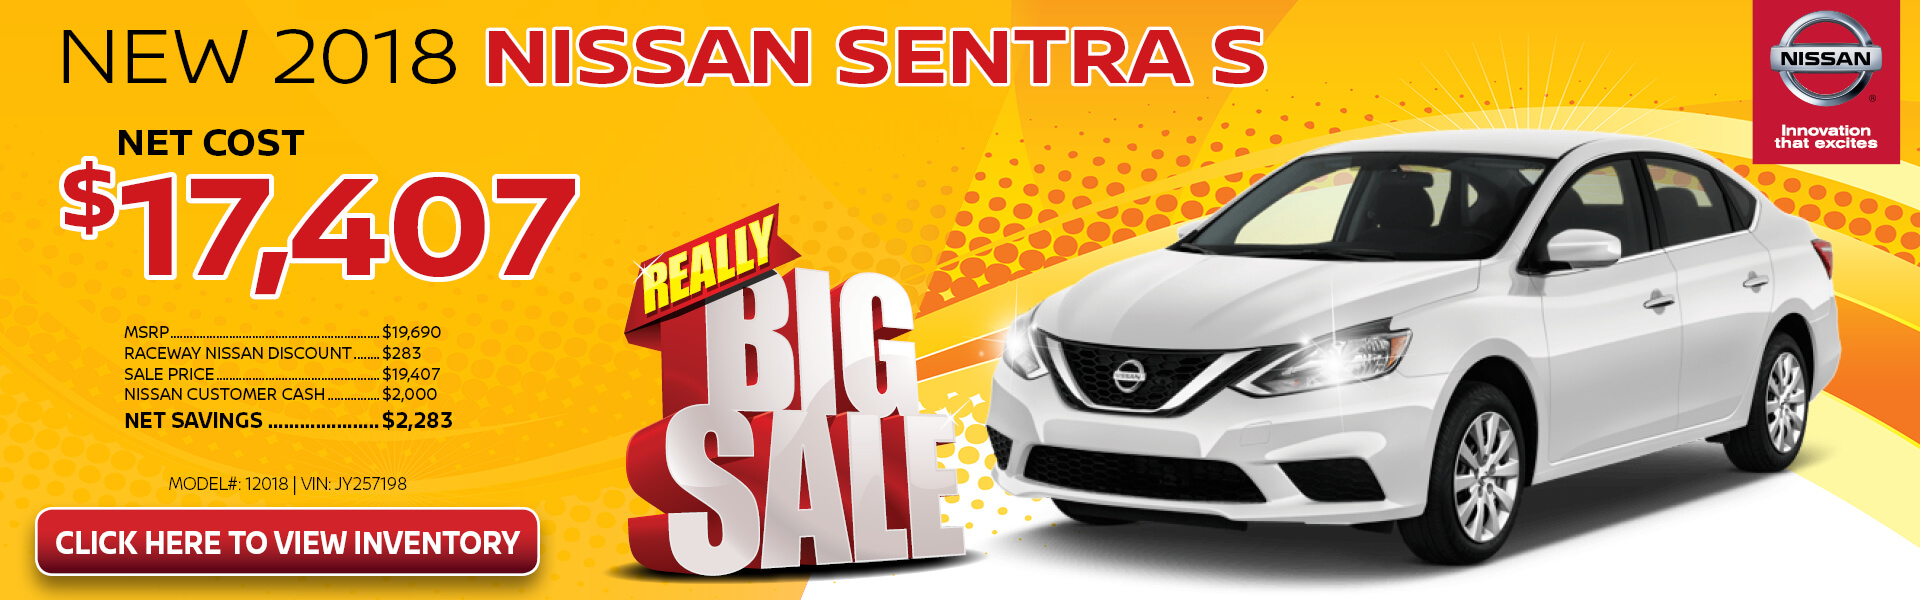 Nissan Sentra $17,407 Purchase